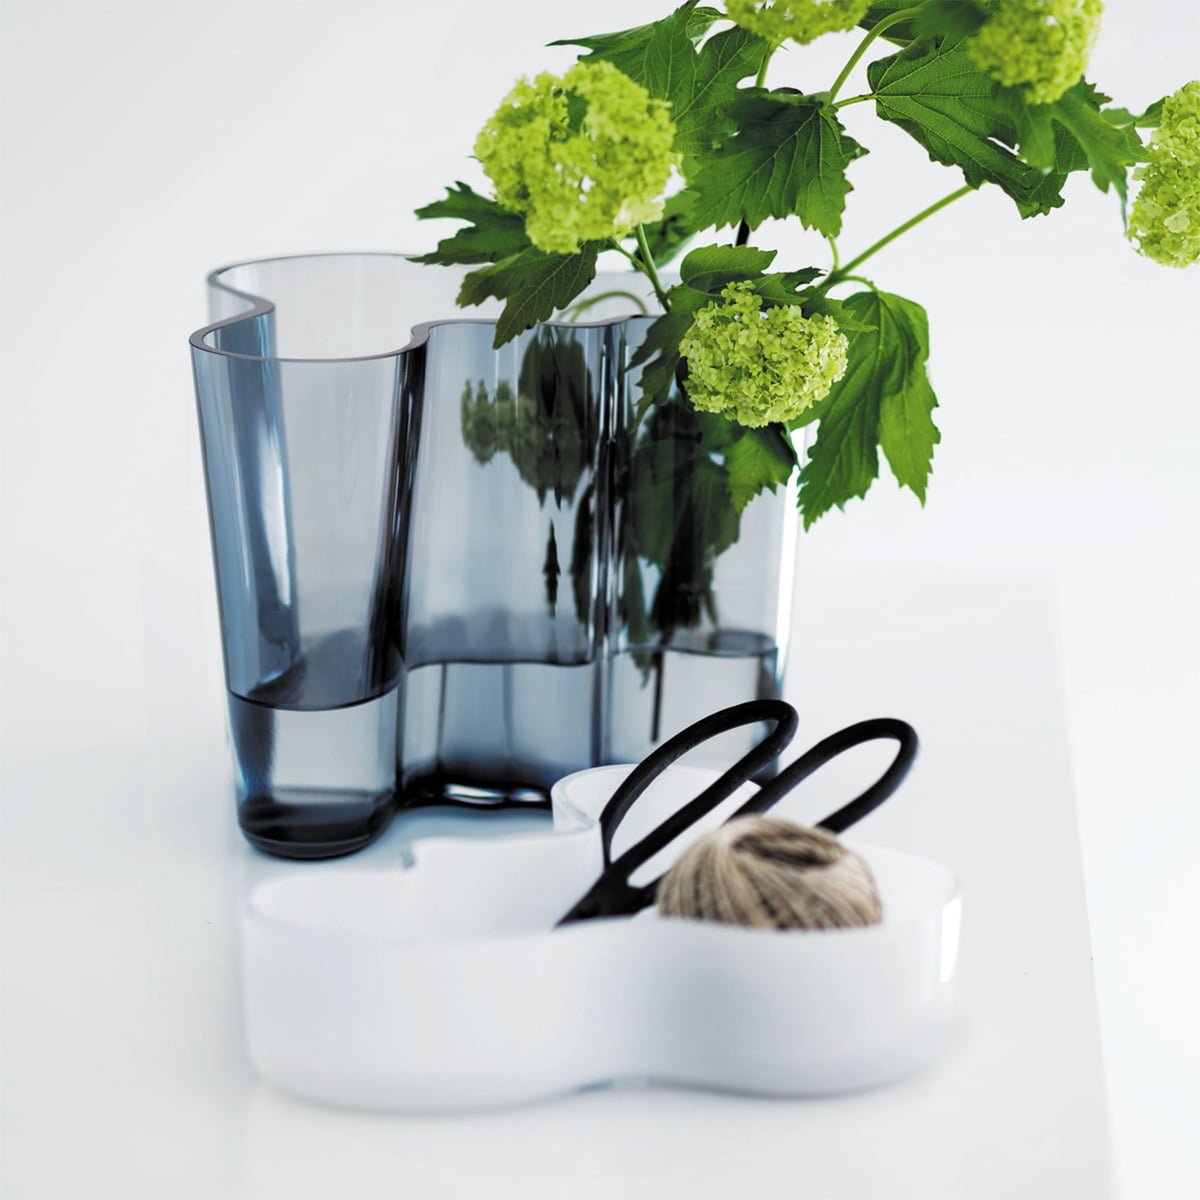 aalto vase savoy 160 mm by iittala. Black Bedroom Furniture Sets. Home Design Ideas